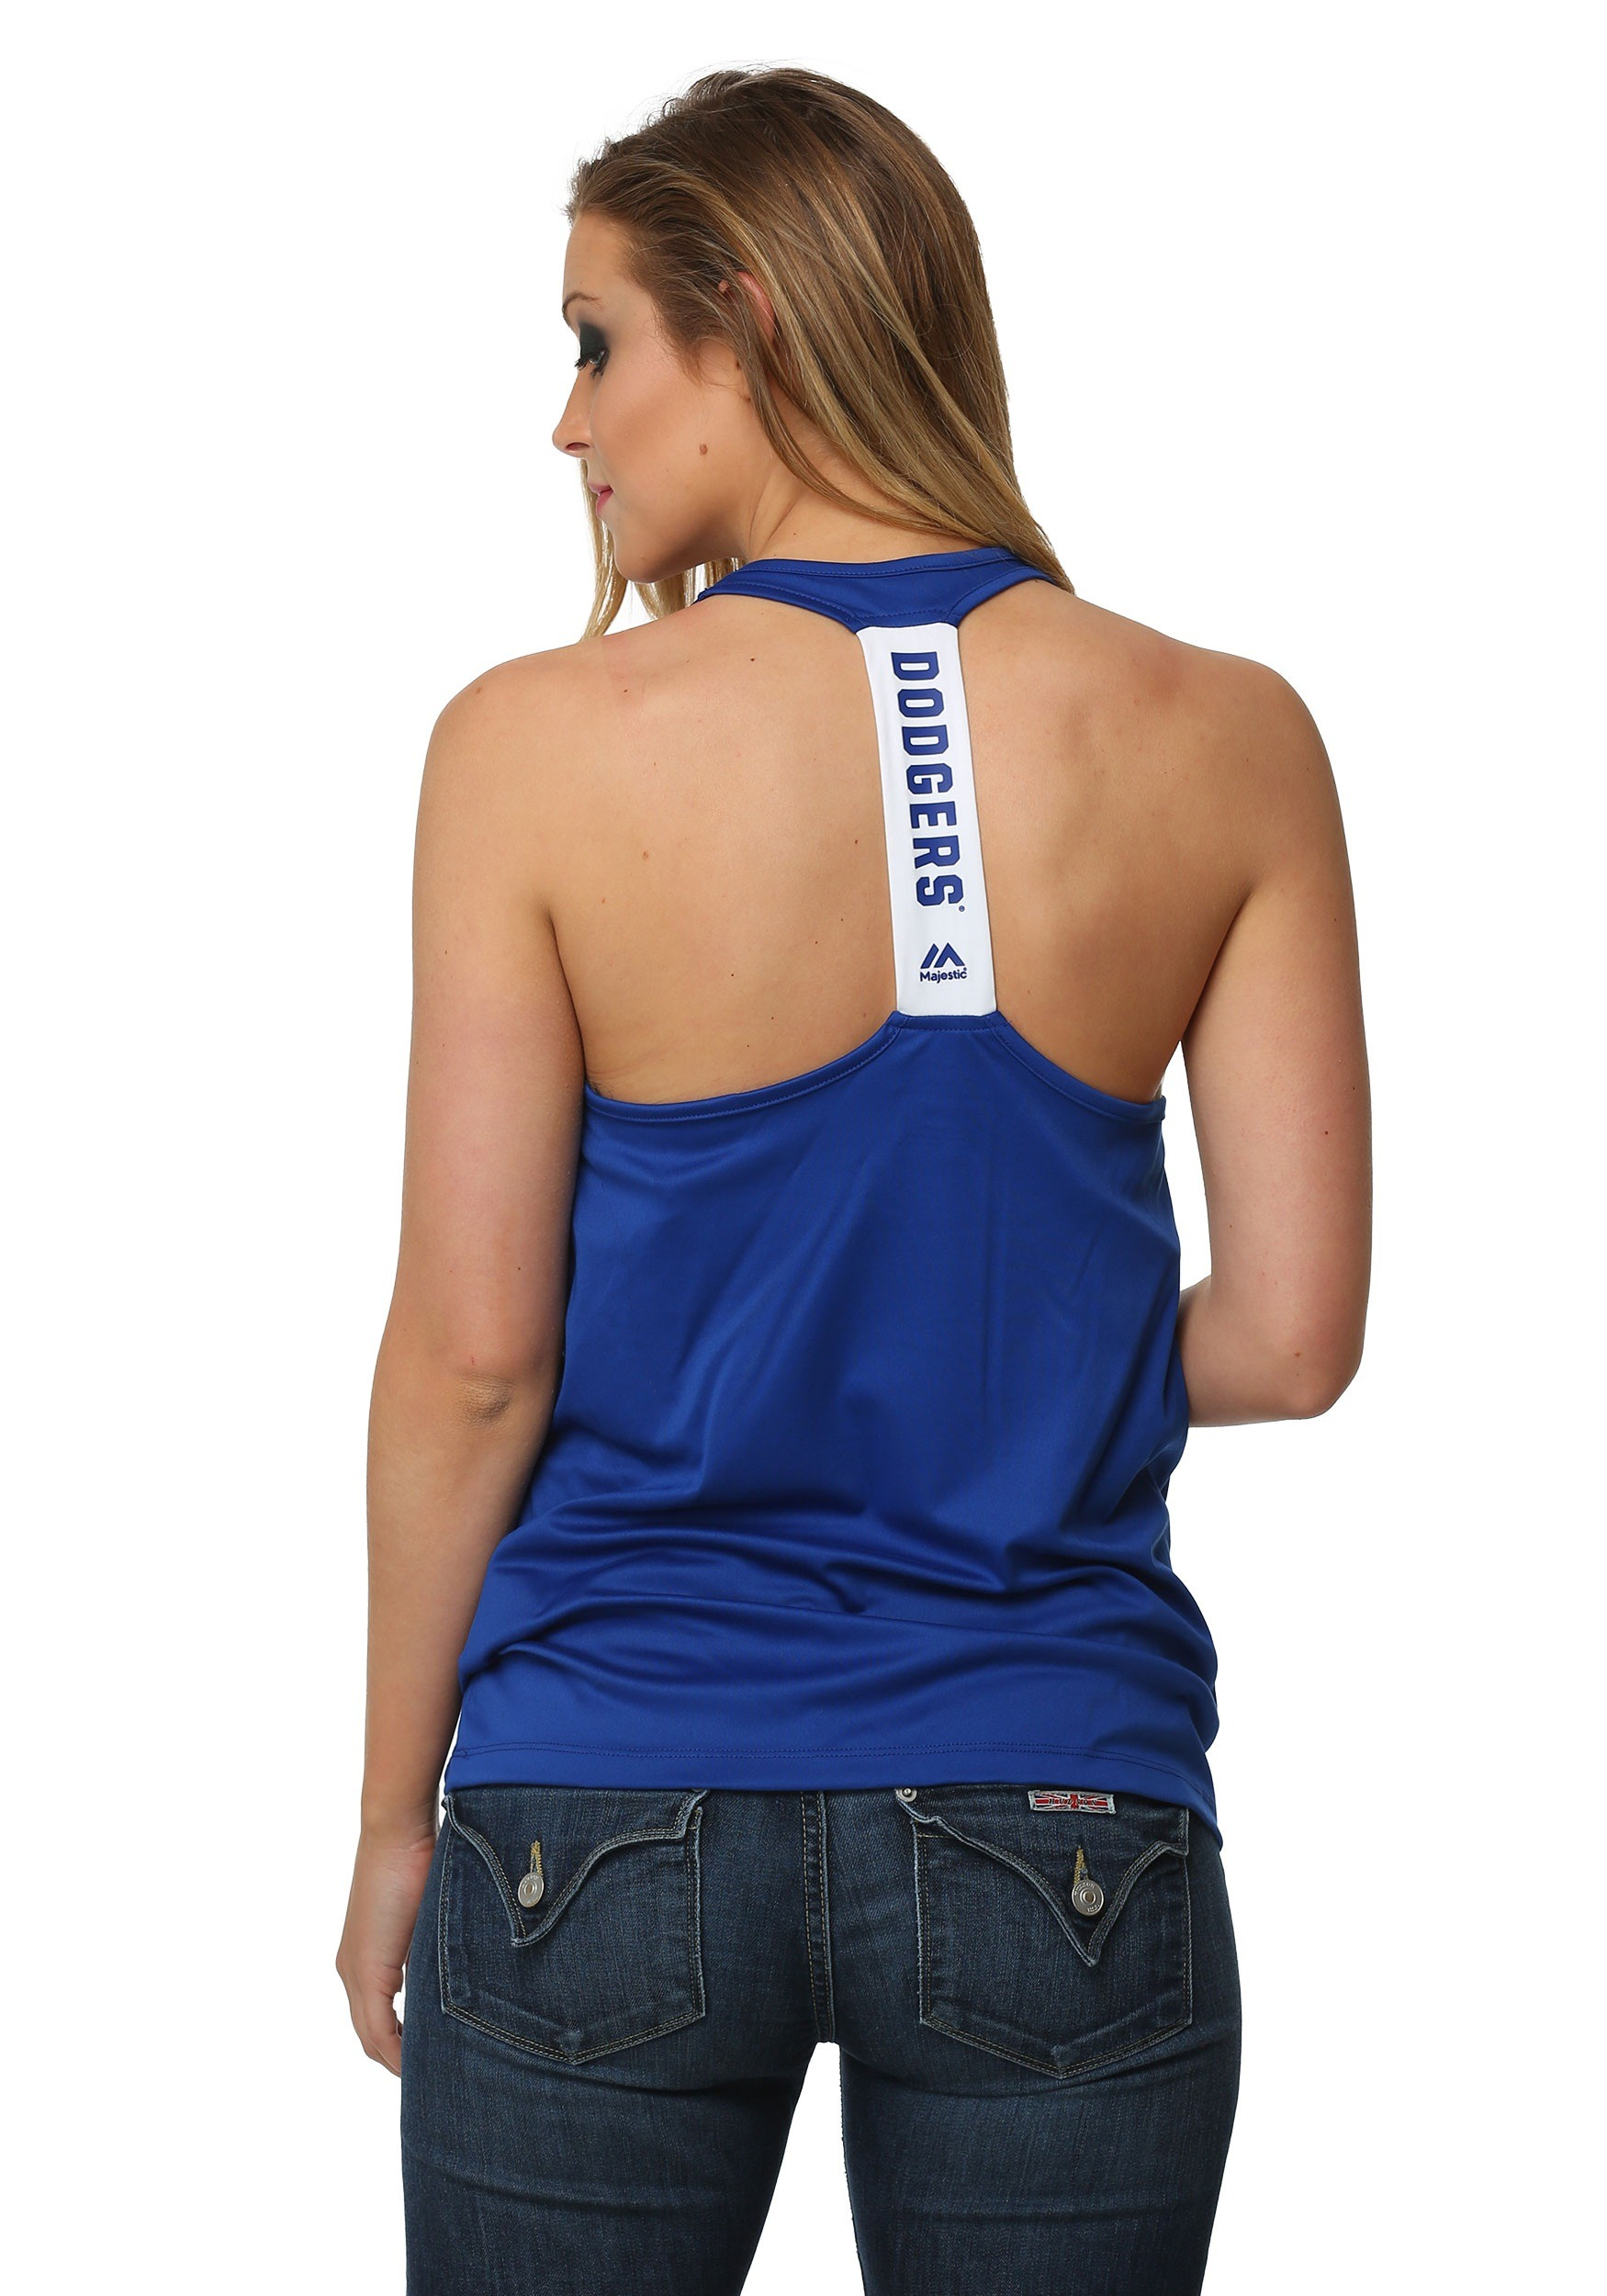 Top Women S Fashion Magazines: Los Angeles Dodgers Tank Top For Women